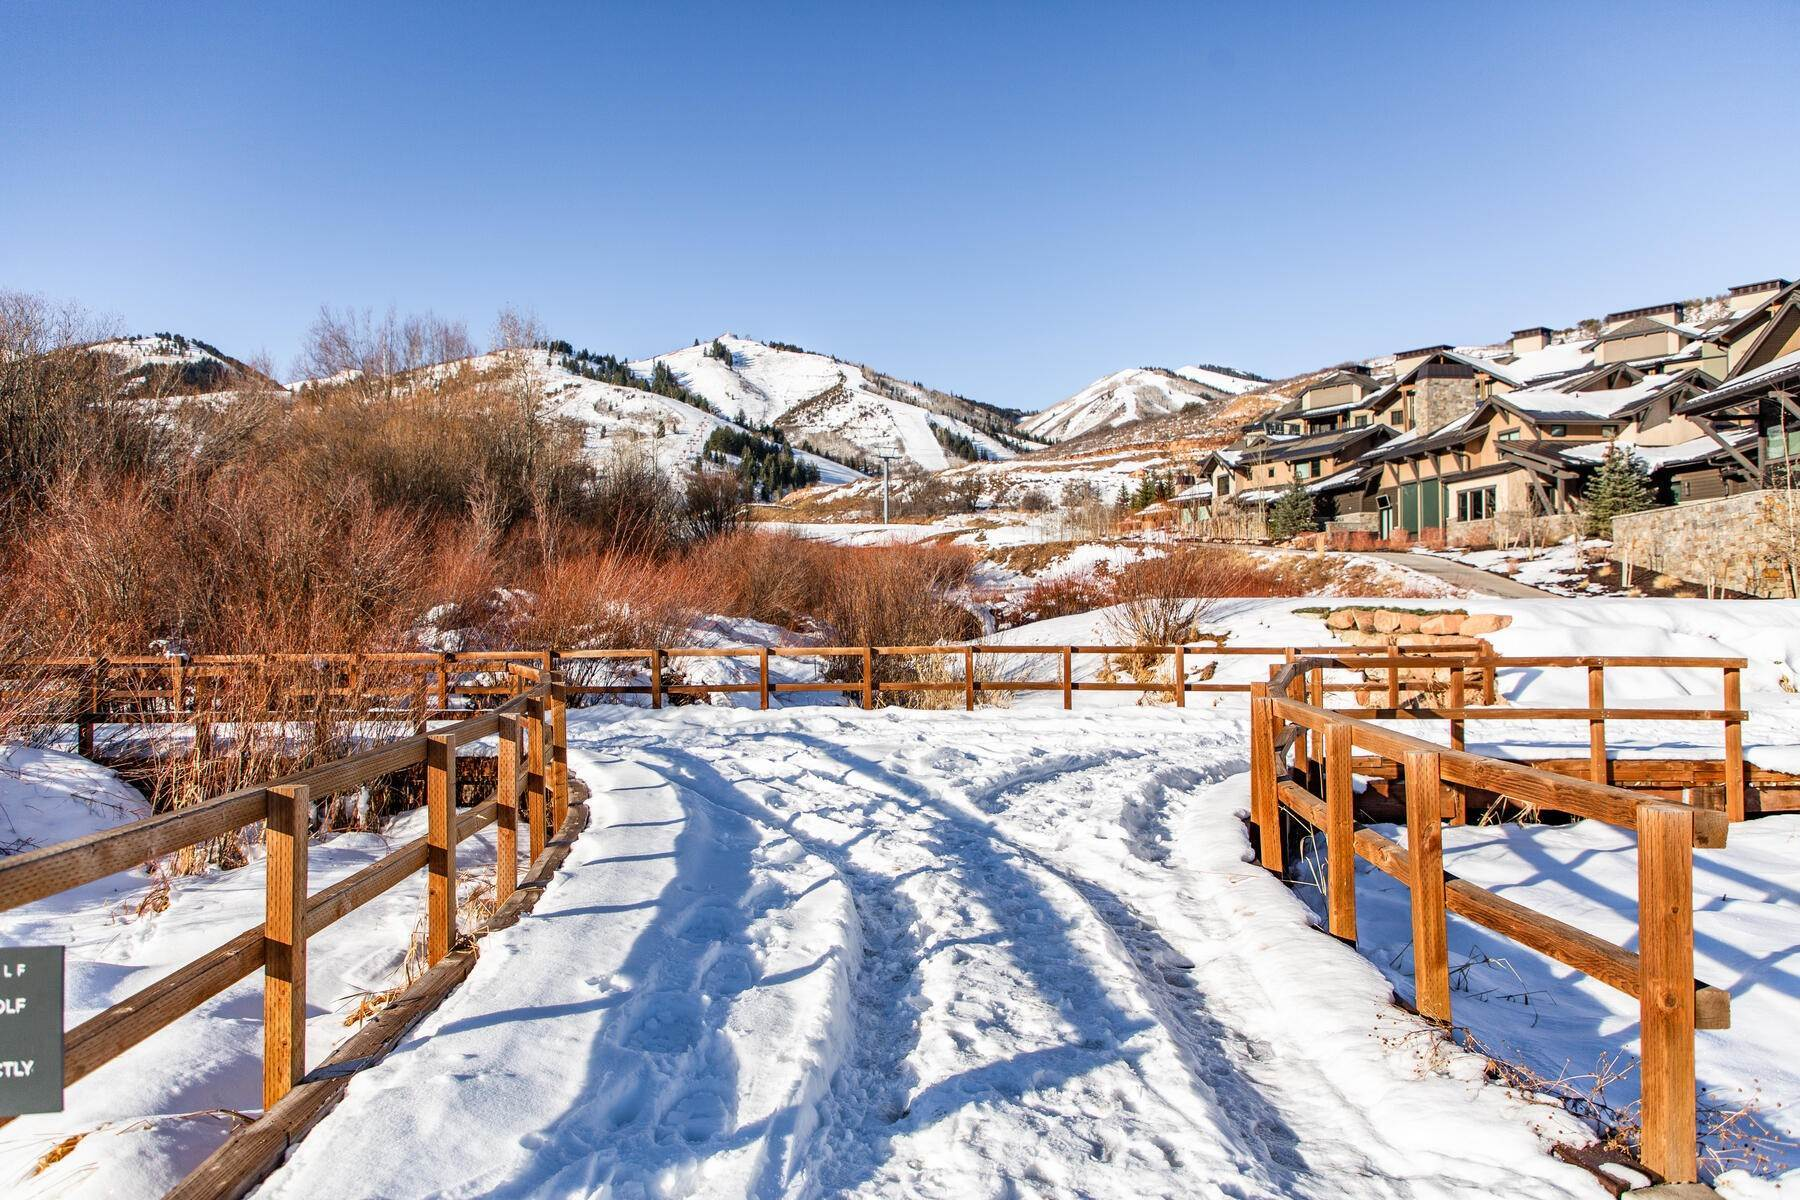 13. Condominiums for Sale at Introducing Park City's Newest Boutique Ski Hotel, The Ascent Park City! 4080 N Cooper Lane #232 Park City, Utah 84098 United States